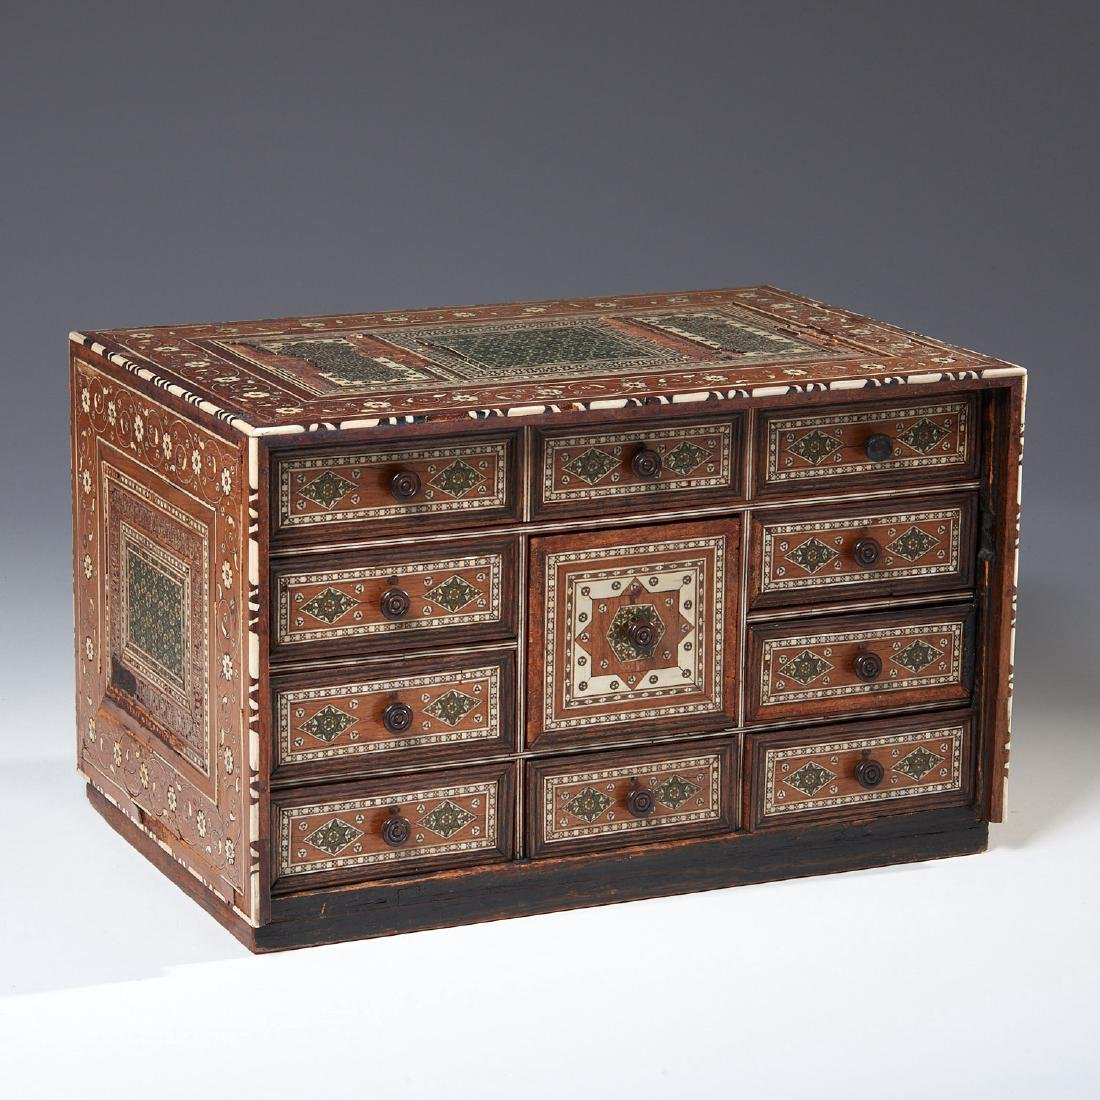 Damascus inlaid tabletop chest of drawers